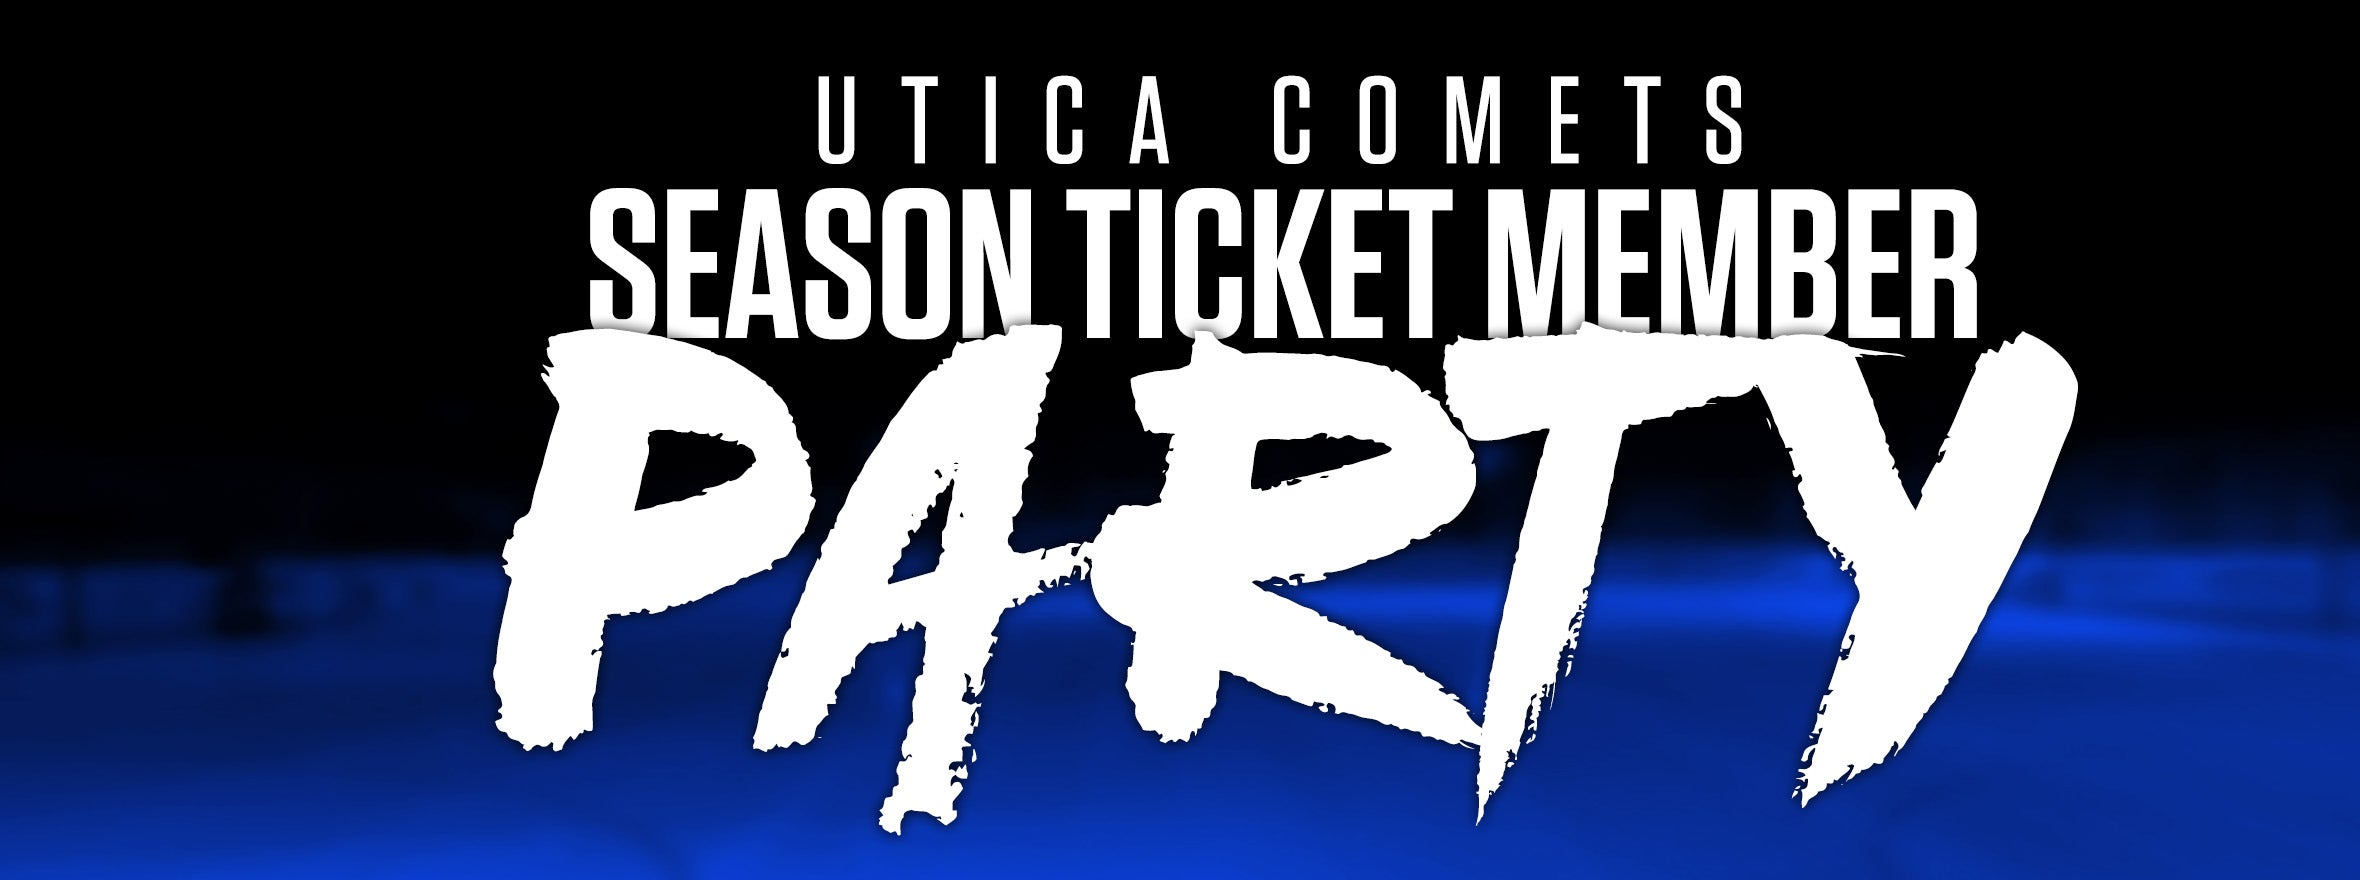 COMETS ANNOUNCE DETAILS FOR SEASON TICKET MEMBER KICKOFF